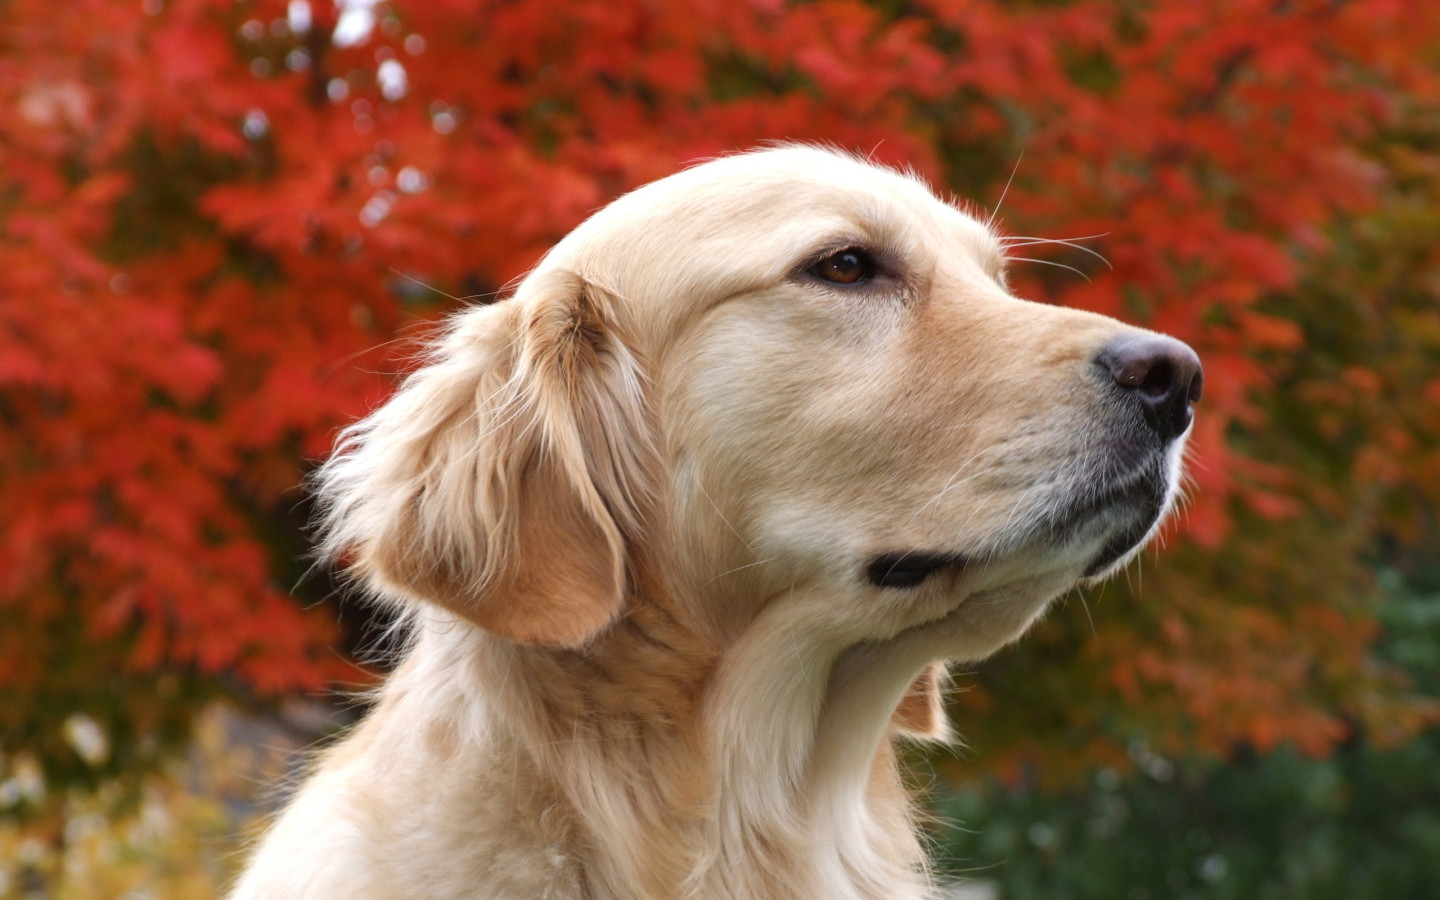 Download All Wallpapers Beautiful Dog Hd Wallpapers [1440x900 1440x900